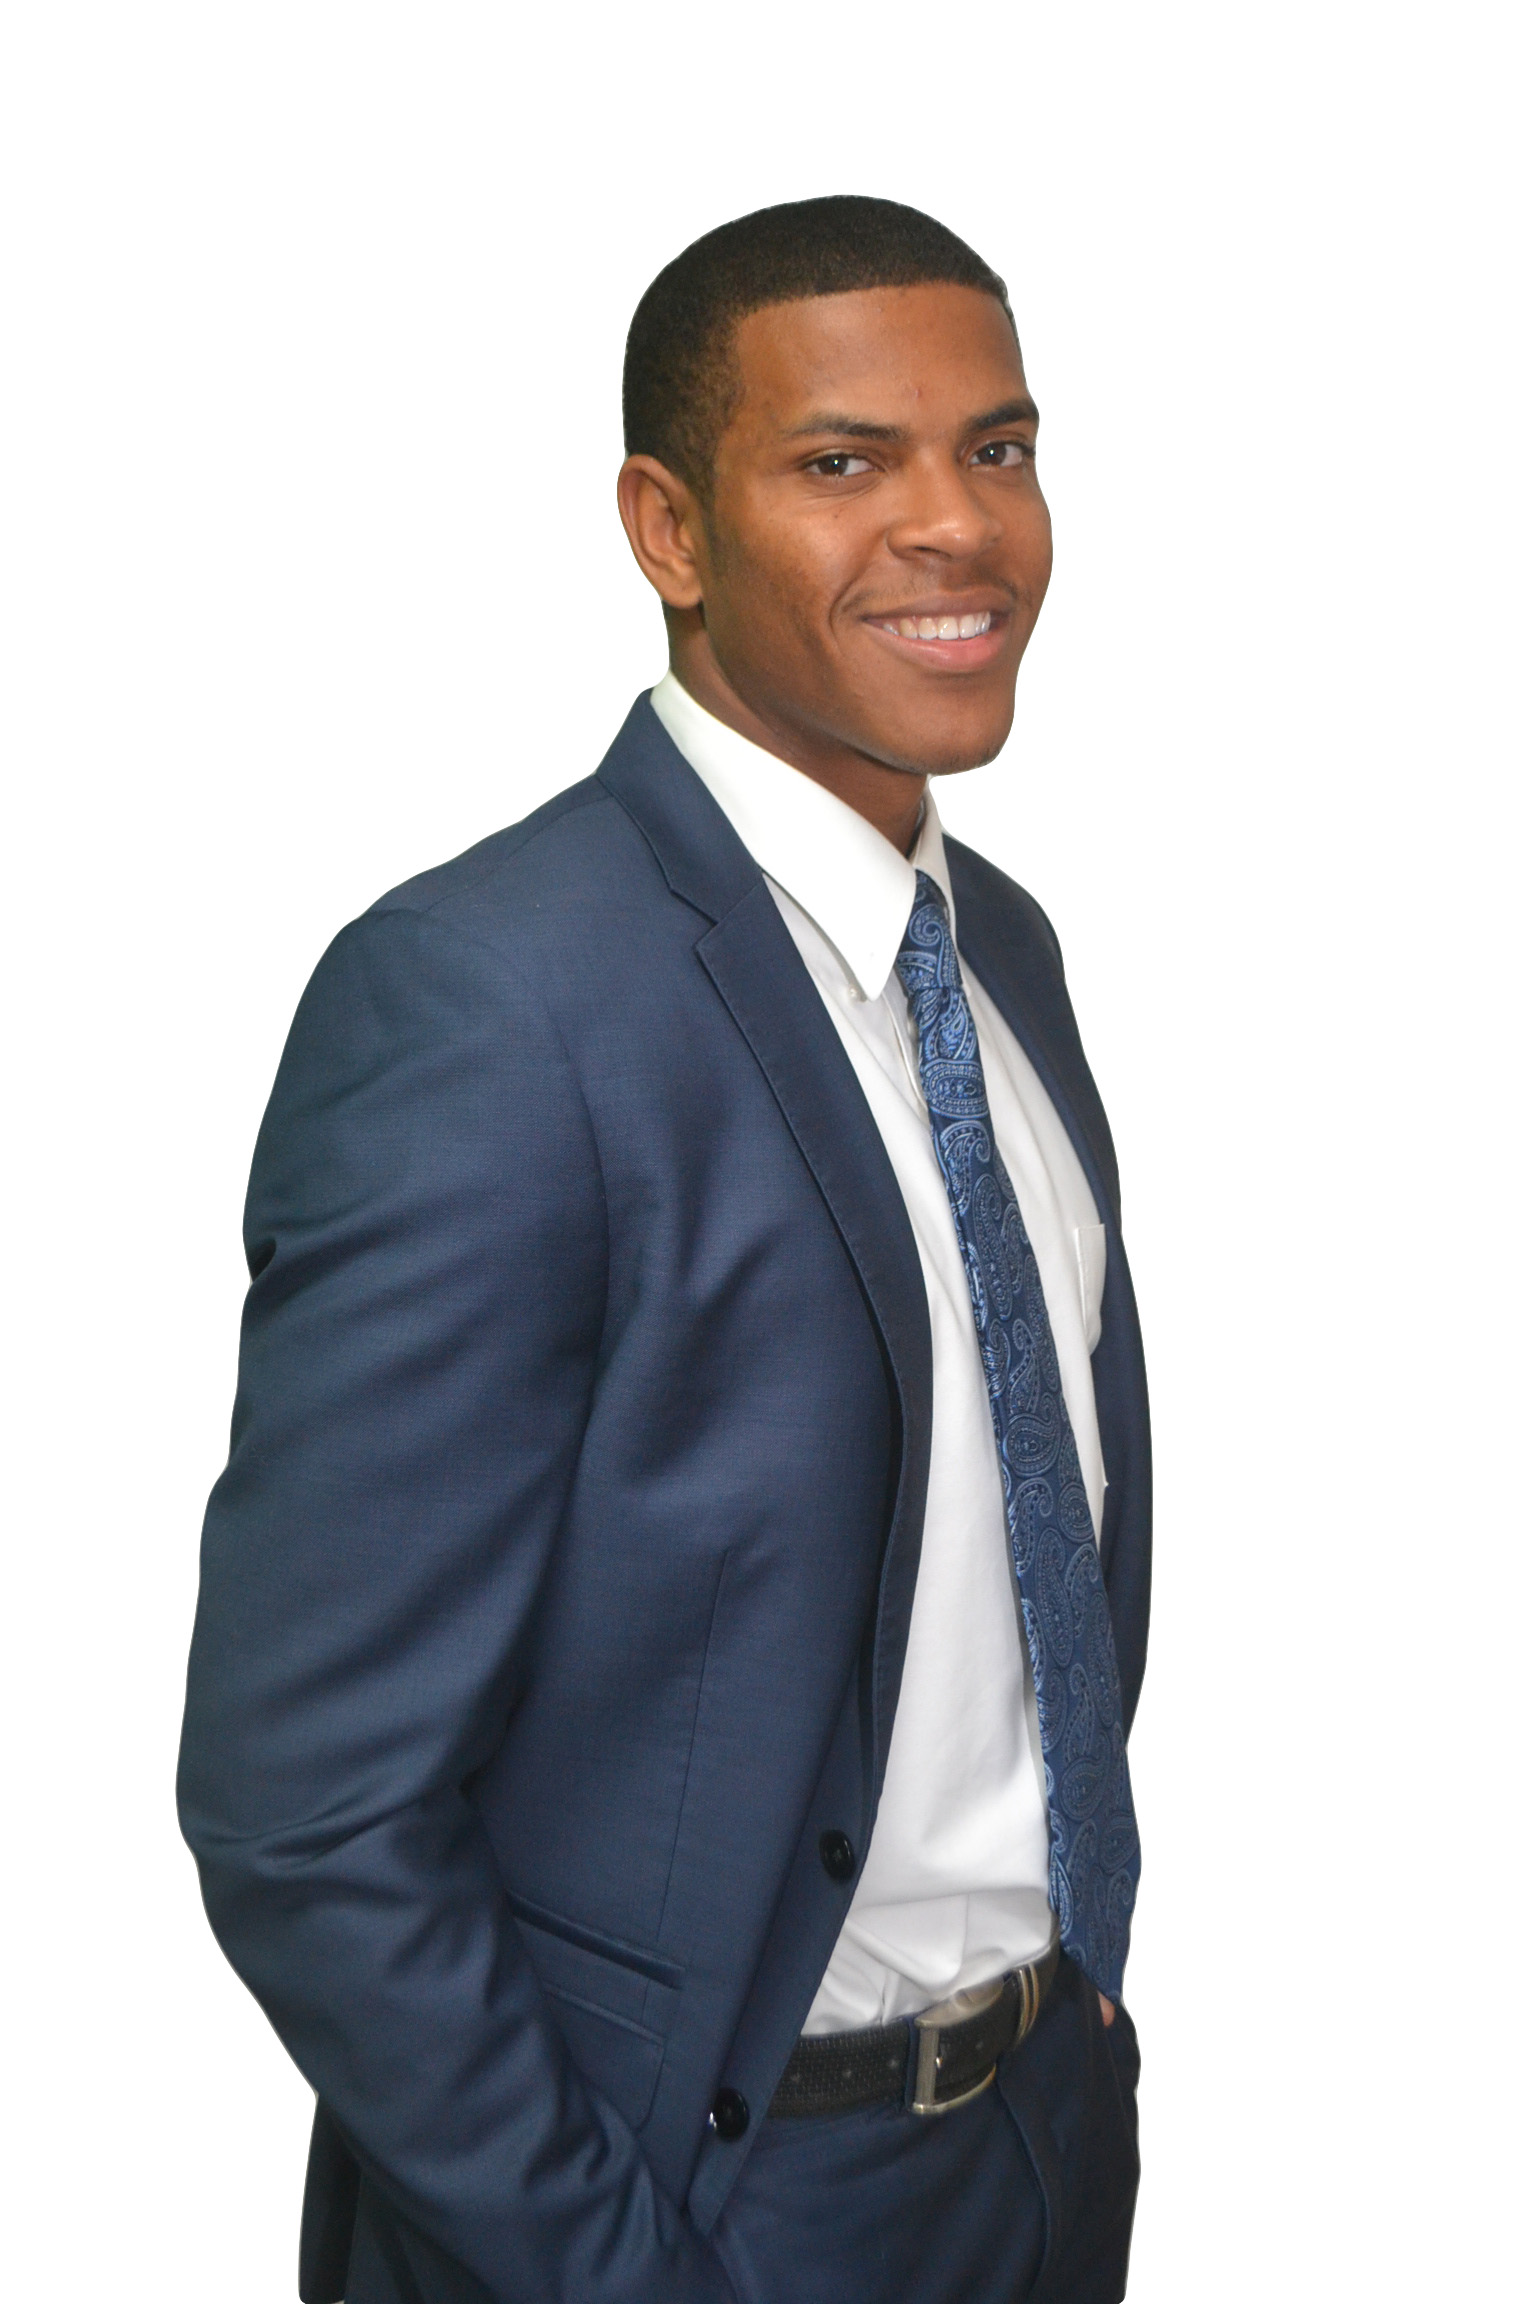 Jason Harris - Jason Harris is a class of 2017 graduate of Howard University. He currently works as an investment sales associate in Marcus & Millichap's Washington, D.C. metro area office. Working to exclusively represent buyers and sellers of multifamily investment properties between five and five hundred units throughout Maryland and Delaware, specifically Baltimore City, the Eastern Shore and the Wilmington, New Castle Markets. In his first year Jason has procured over eleven million dollars in multifamily sales inventory. His aspirations include earning a master's in real estate finance from Georgetown University, leading his own multifamily acquisitions company and being a good family man.